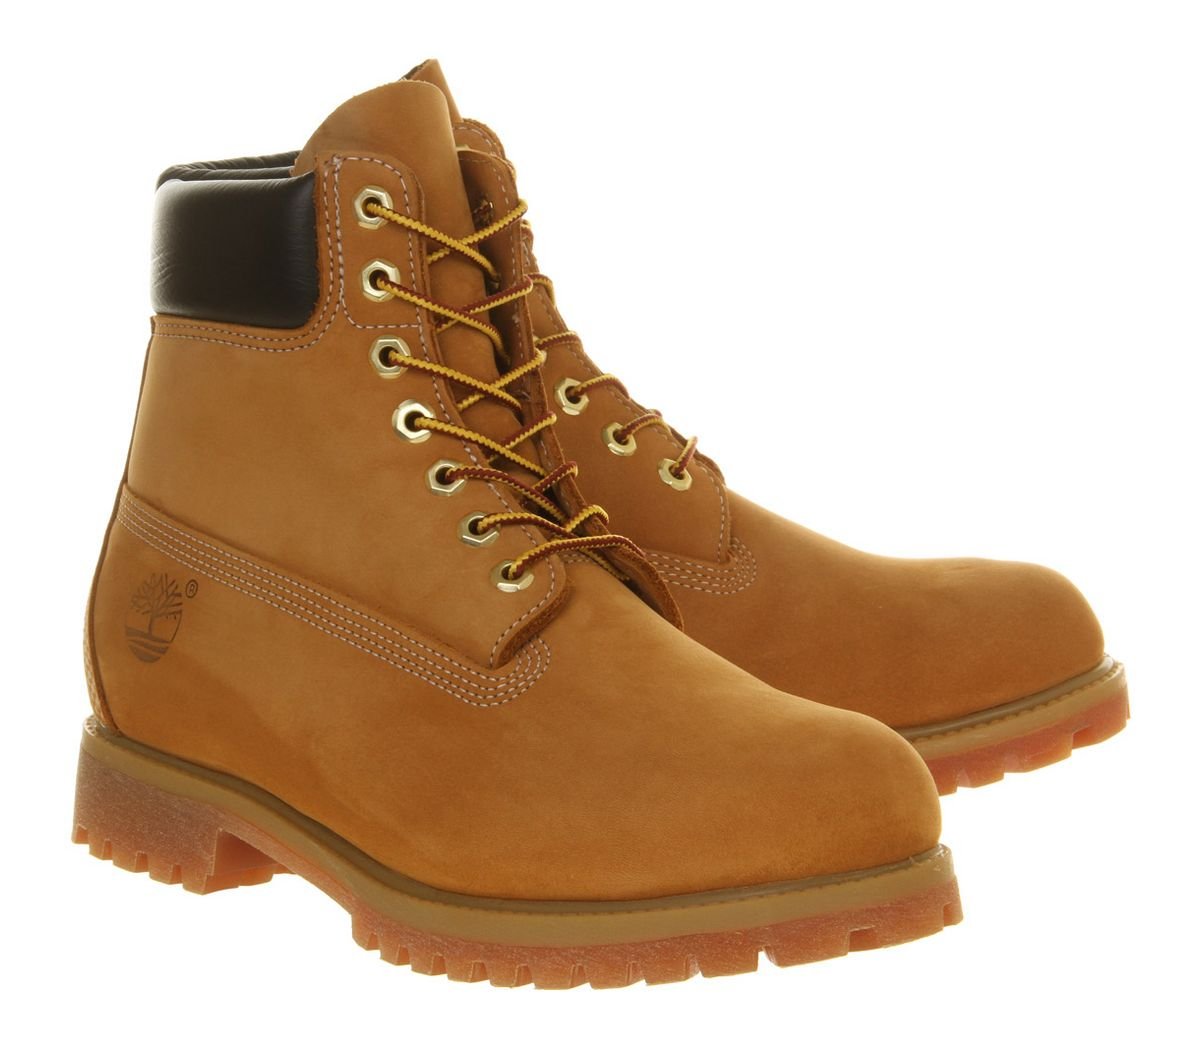 monstruo cerca corrupción  Mens Timberland 6 Inch Buck Boots Wheat Nubuck Boots | eBay